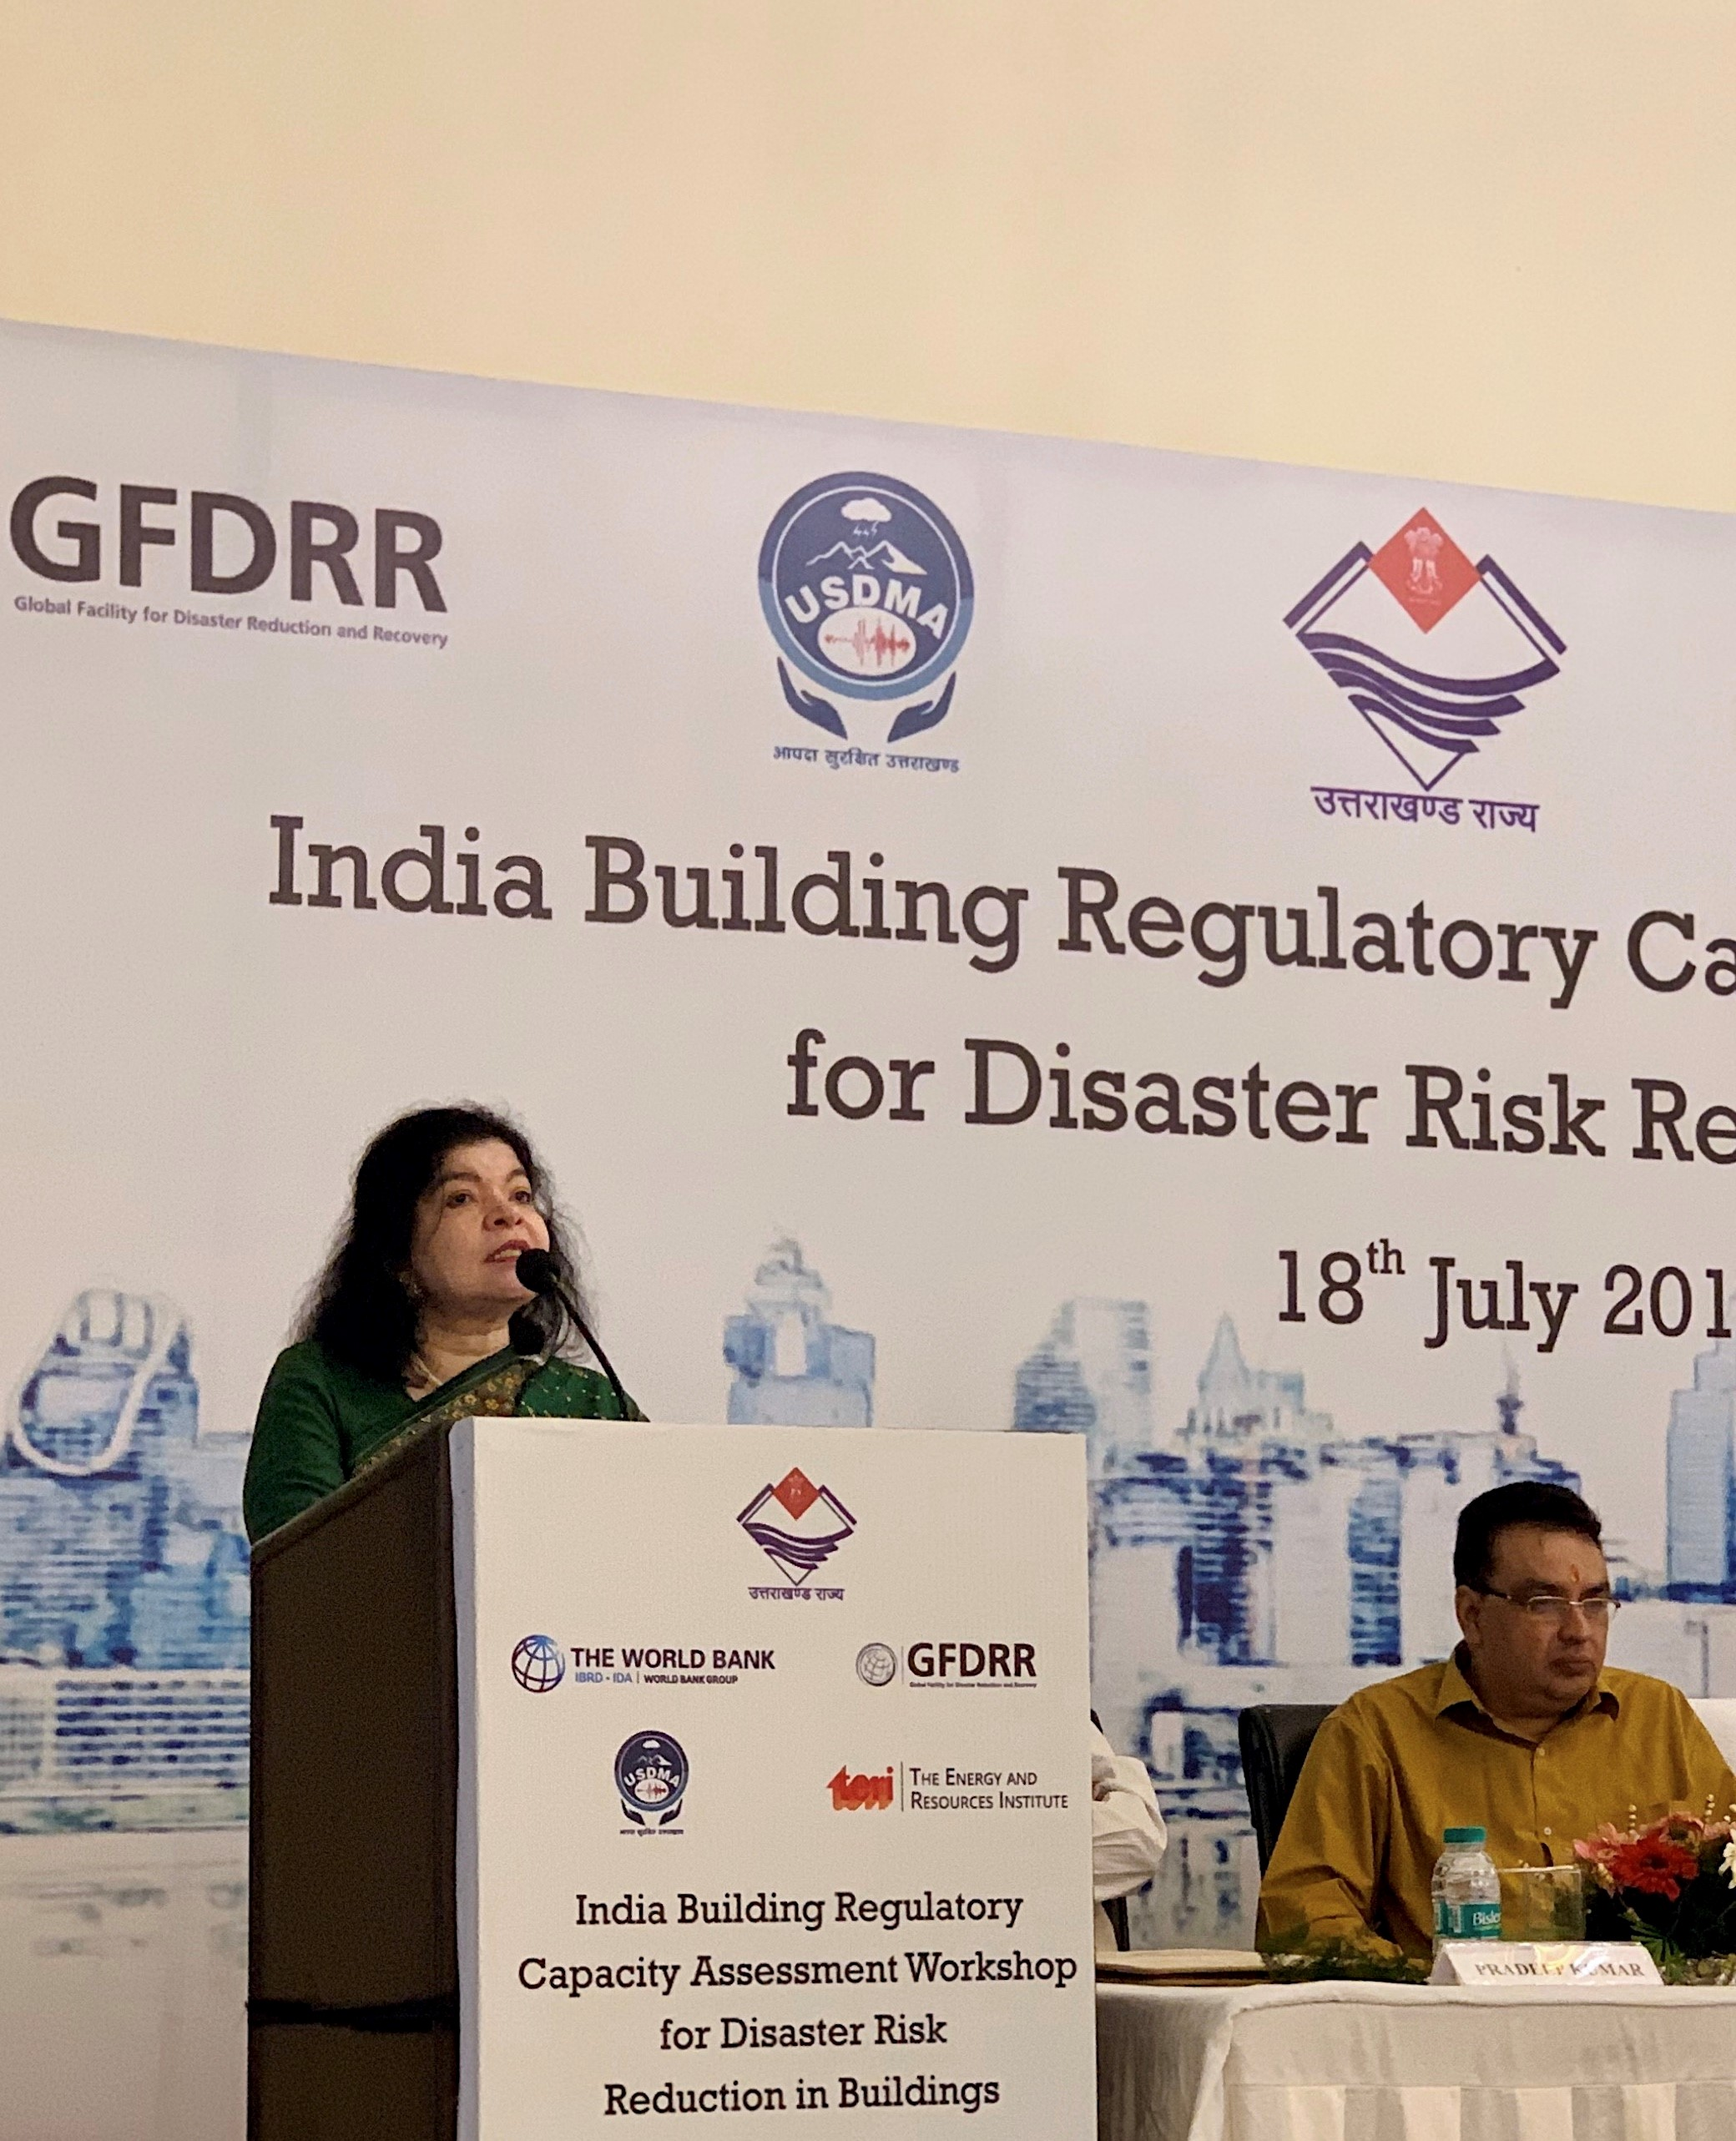 Doctor Alpa Sheth presents a review of building regulatory capacity in Jammu & Kashmir and Ladakh